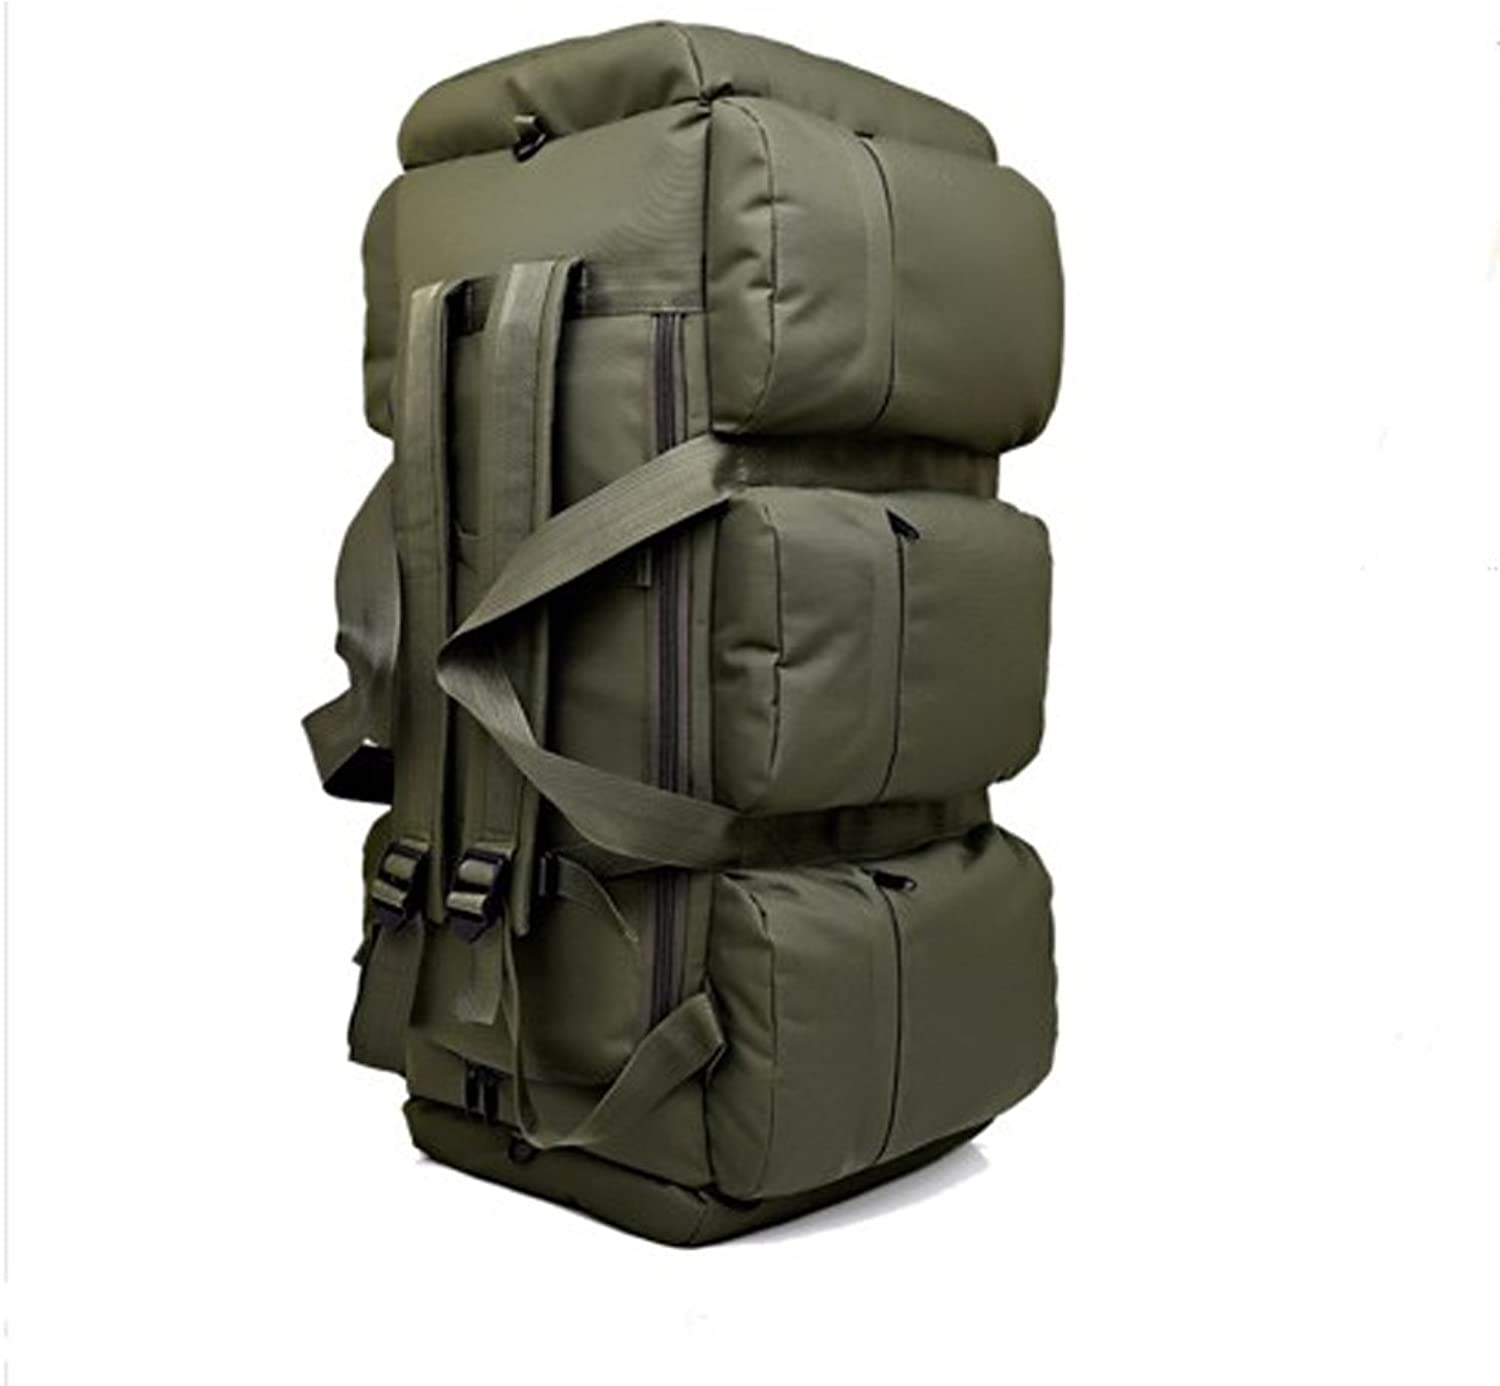 ASdf Outdoor Large Capacity Hiking Climbing Backpacks Bag Army Camouflage Mountaineering Backpack 90L (color   Army Green)